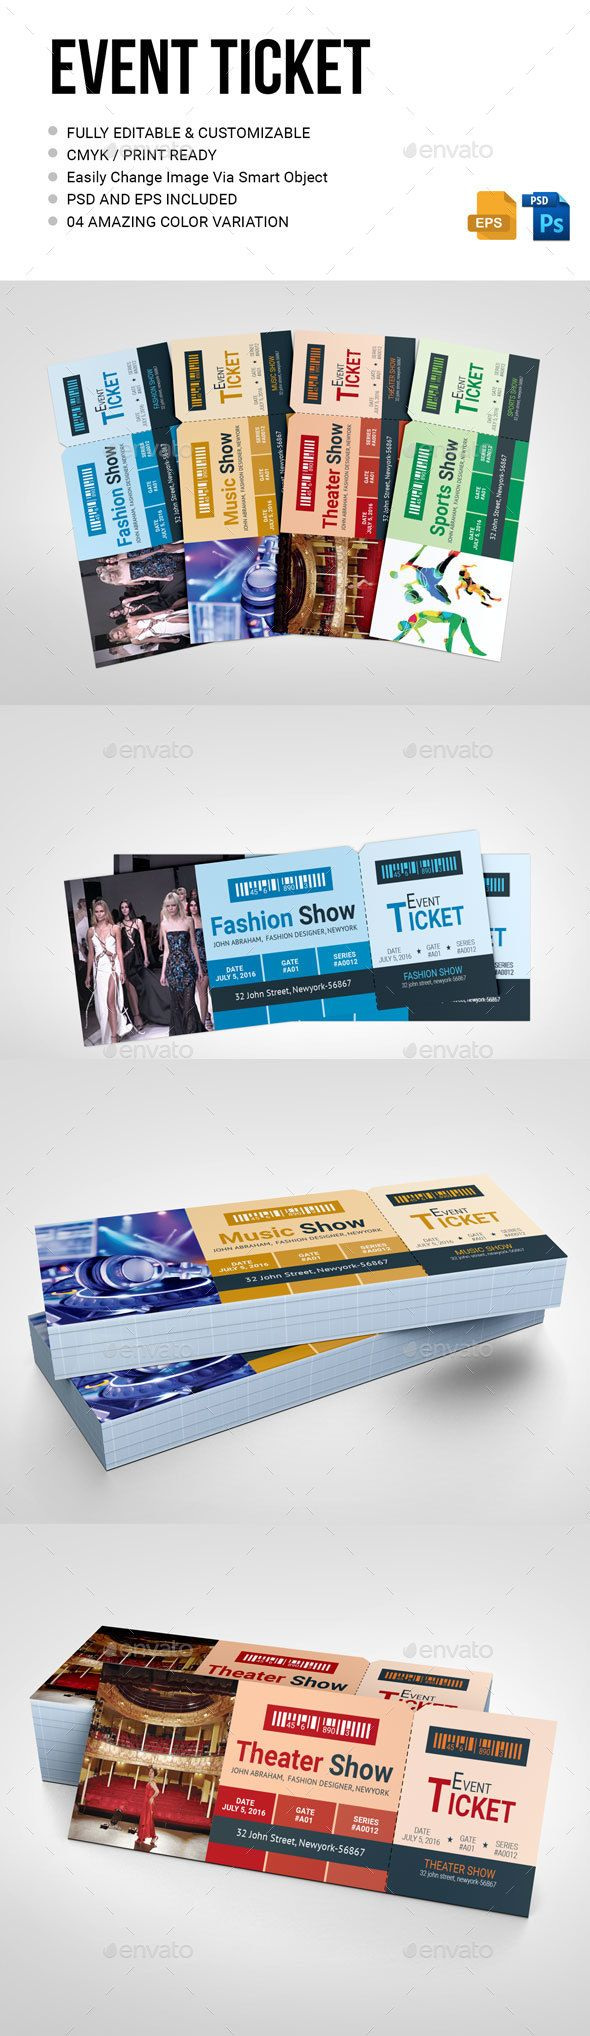 Event Ticket PSD Template • Download ↓ https://graphicriver.net ...